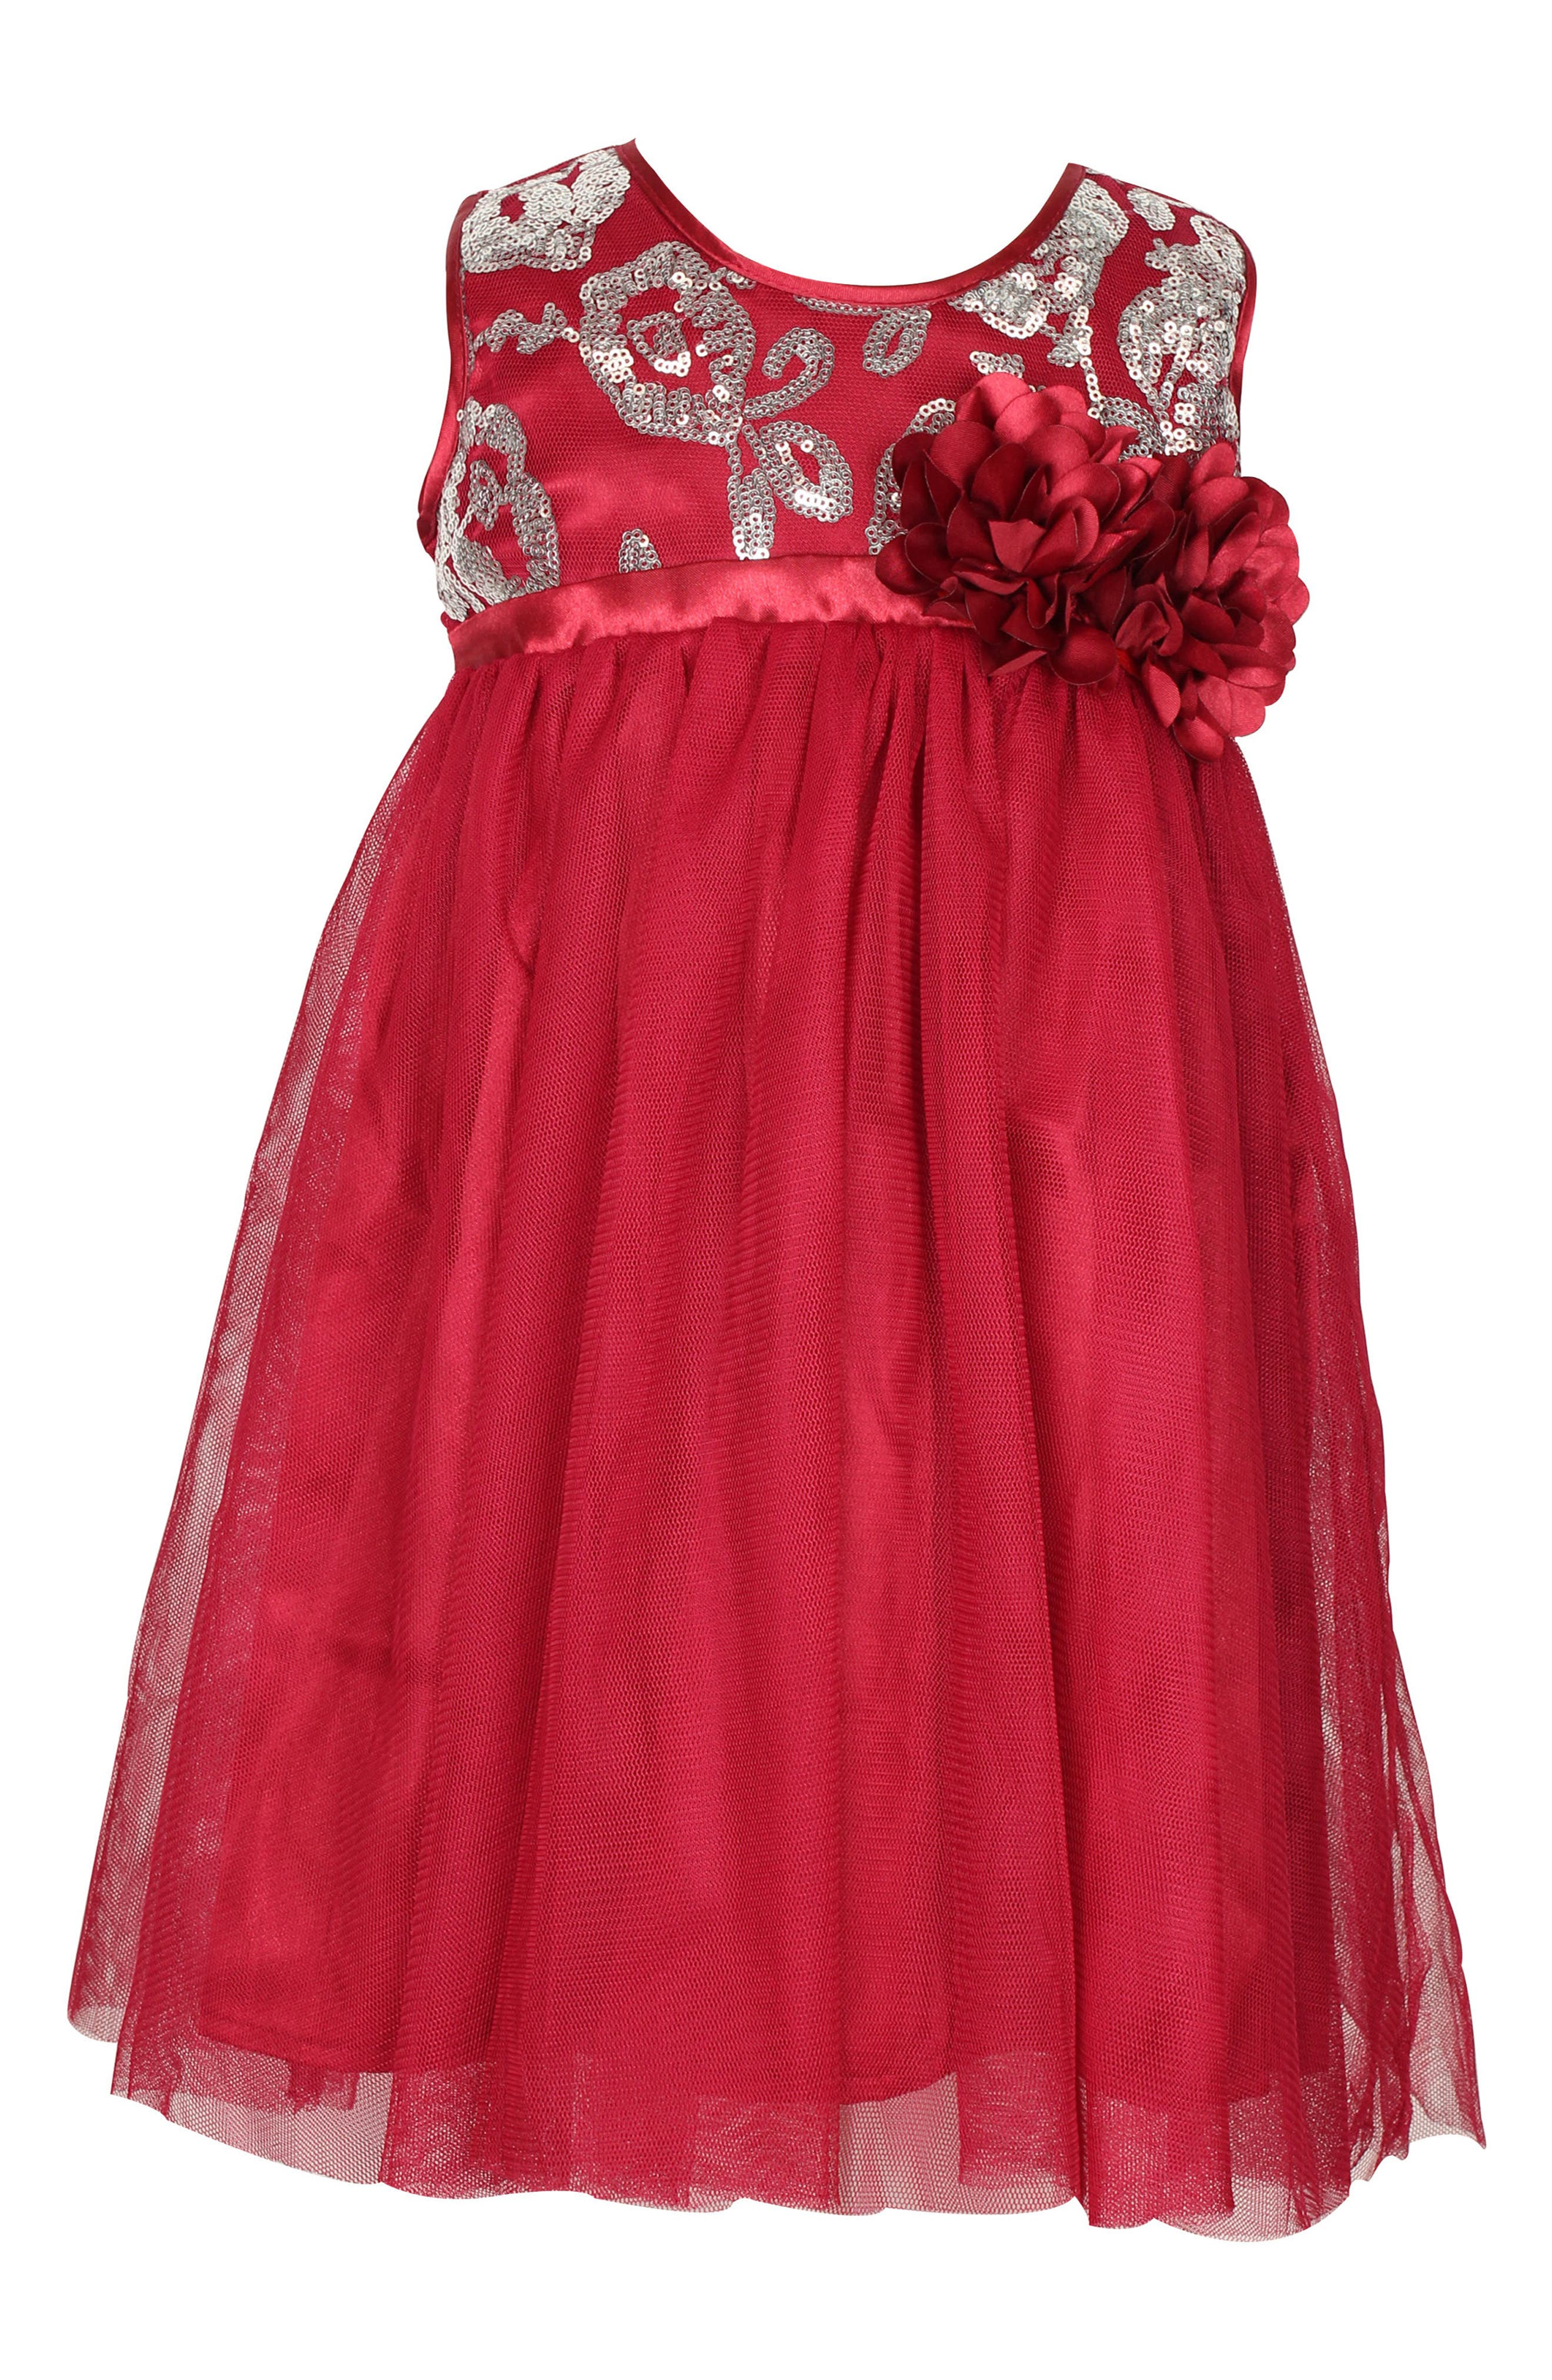 Sleeveless Tulle Dress,                             Main thumbnail 1, color,                             Red